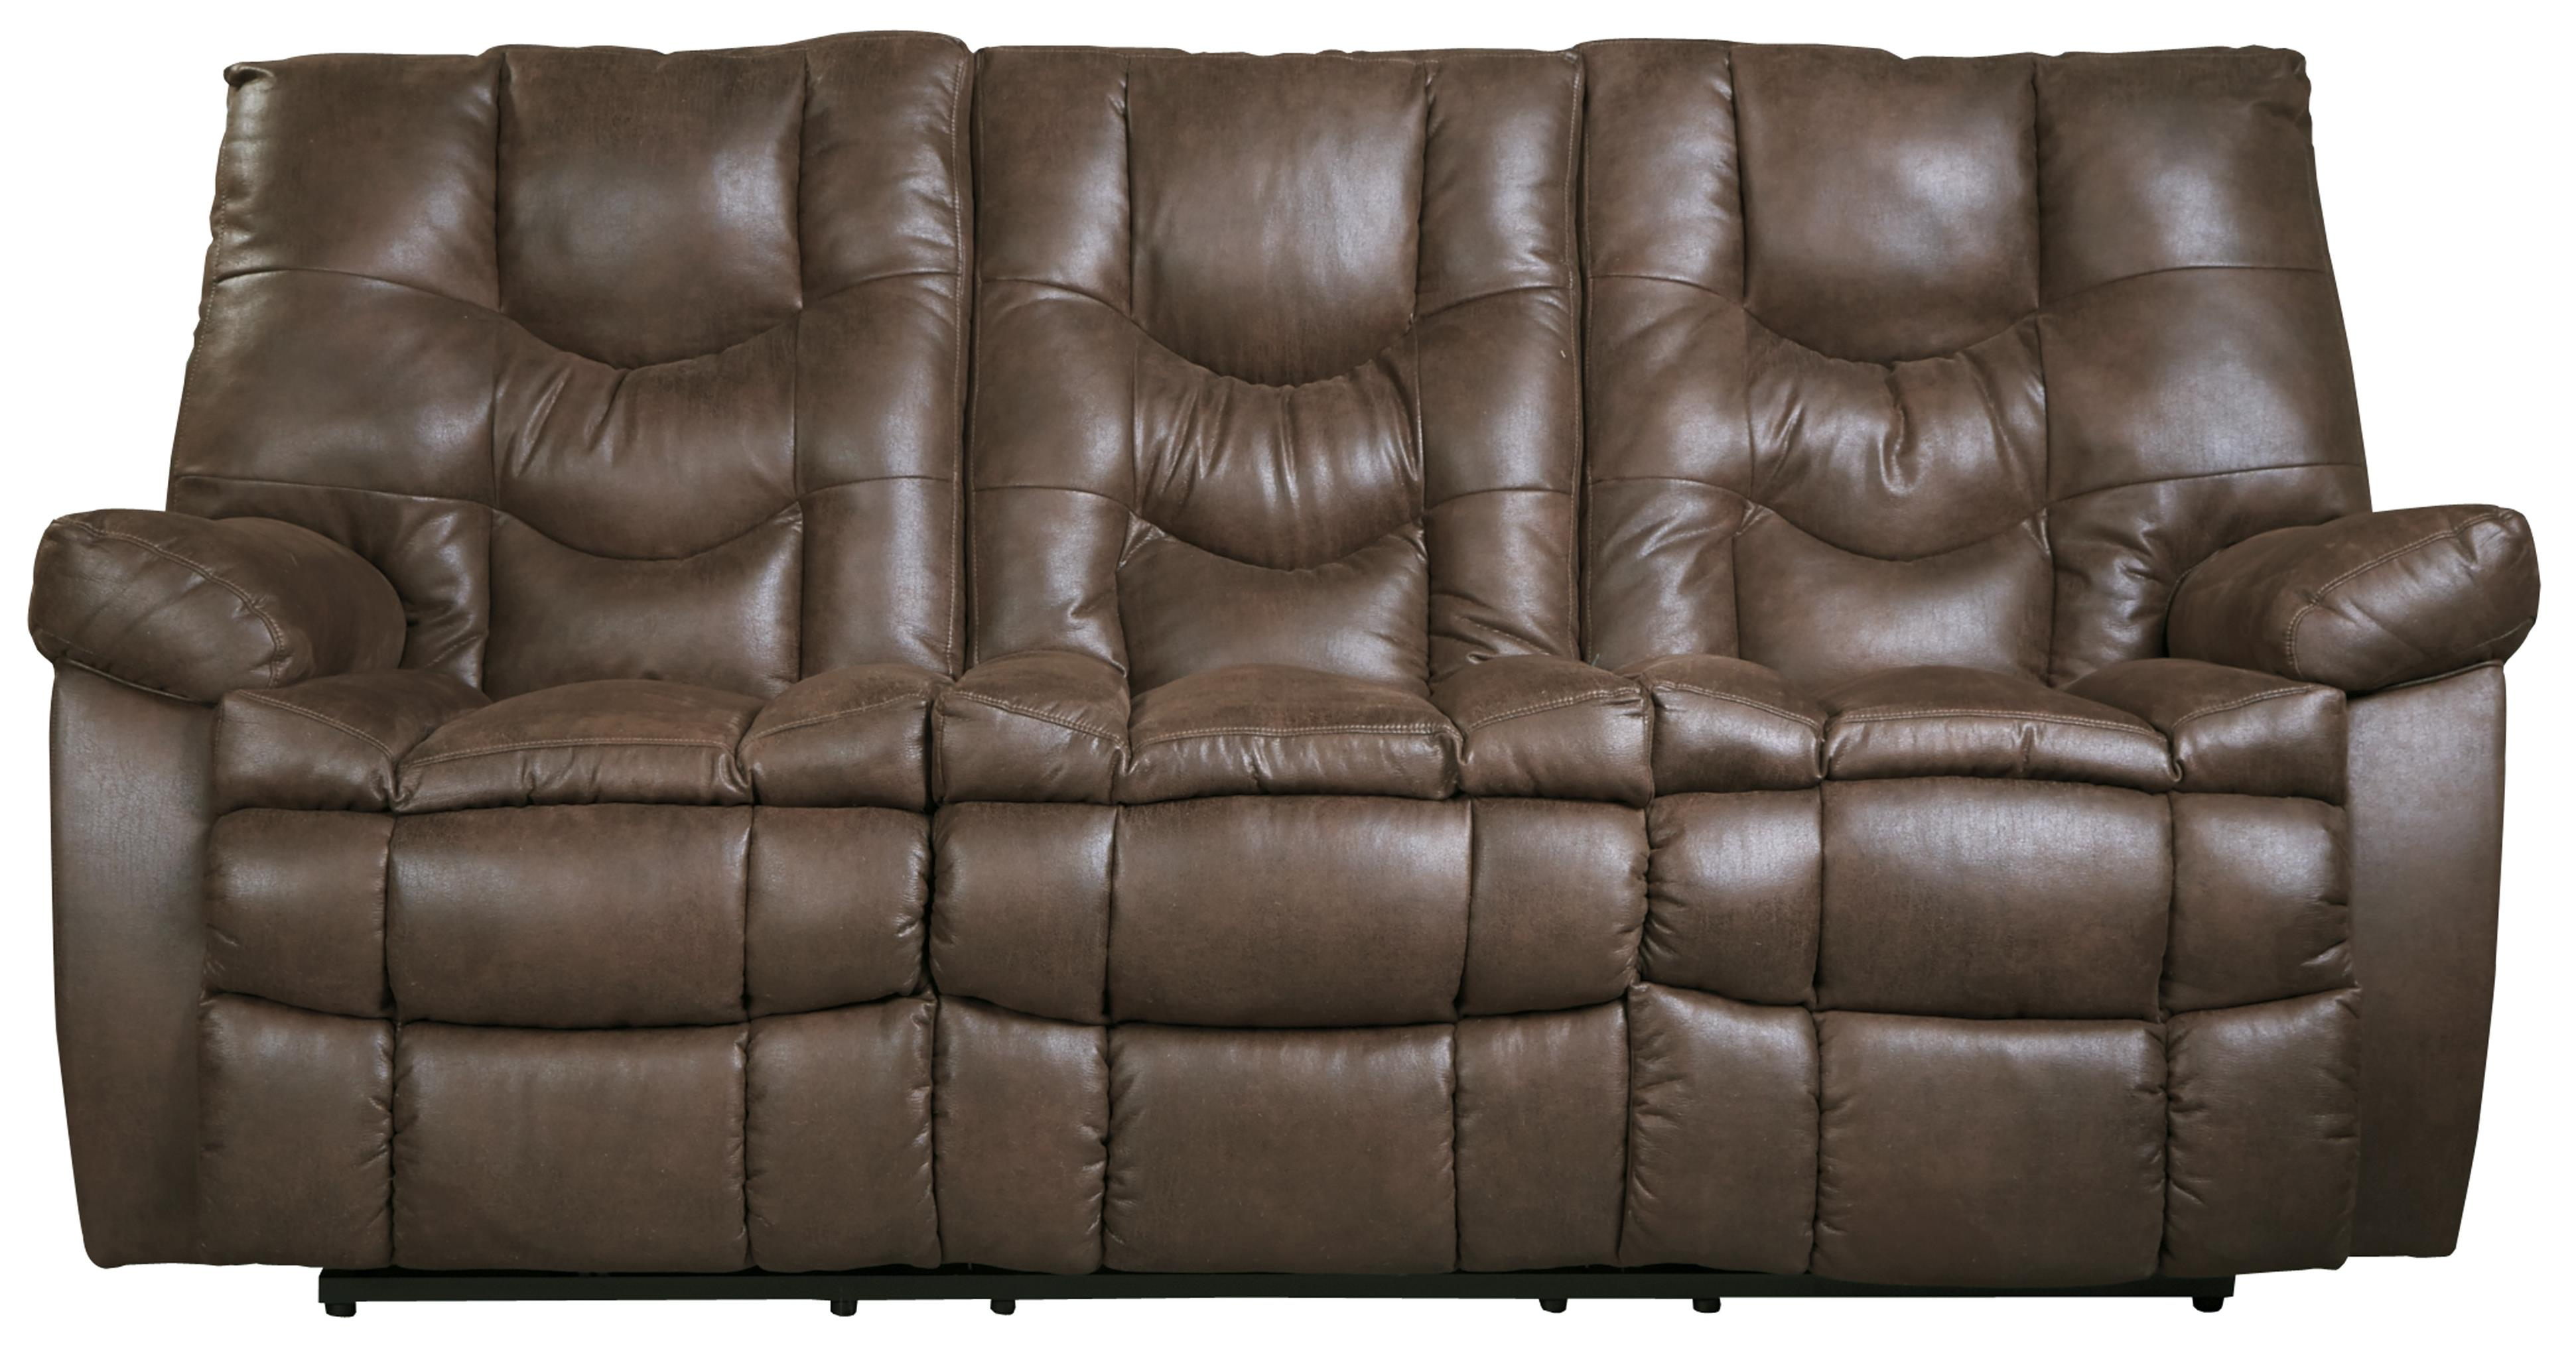 Benchcraft Burgett Reclining Sofa - Item Number: 9220188